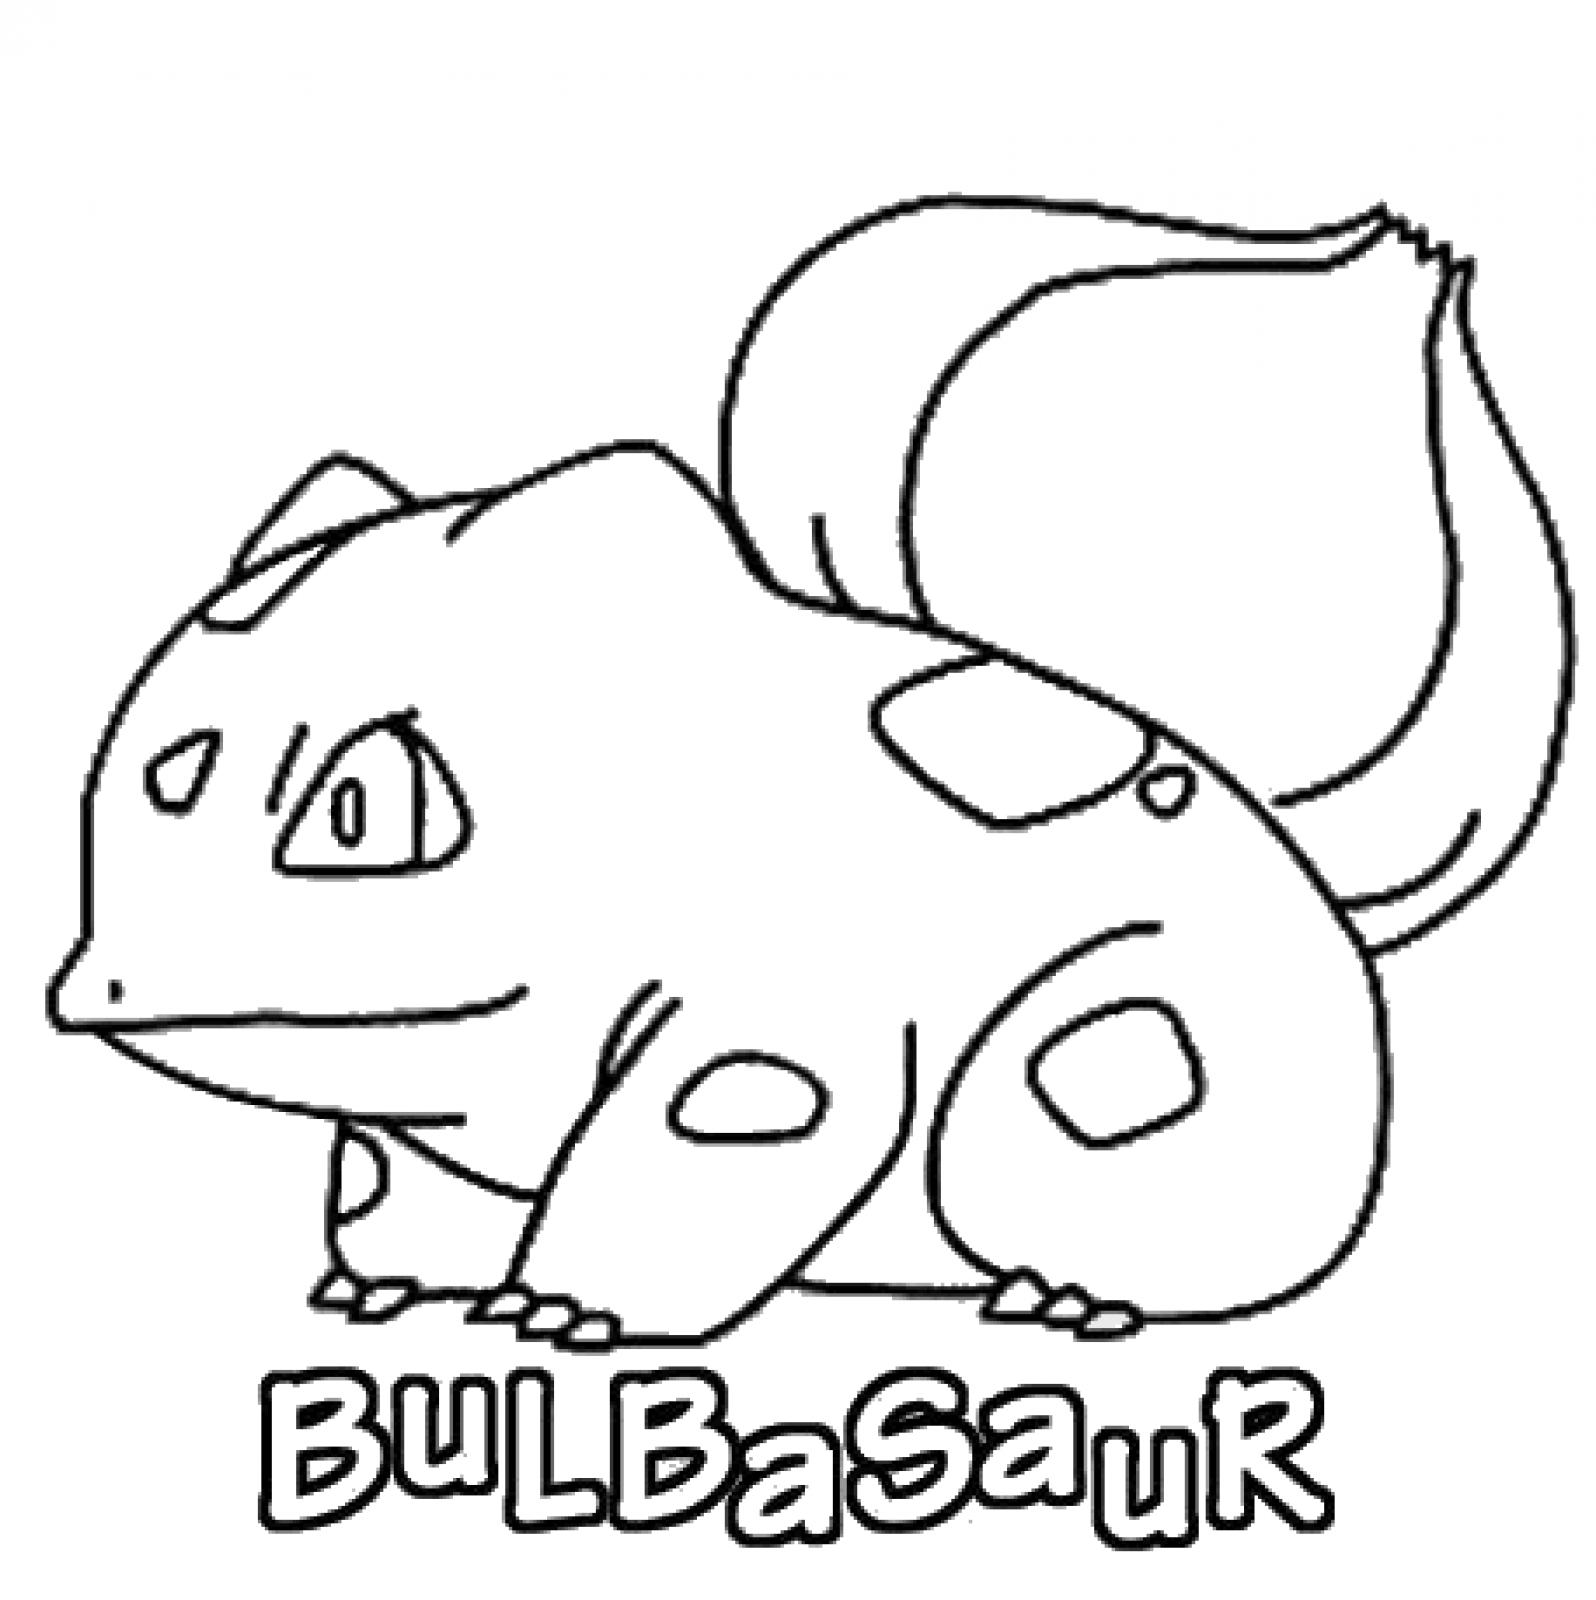 Bulbasaur Coloring Pages Coloring Home Bulbasaur Coloring Page